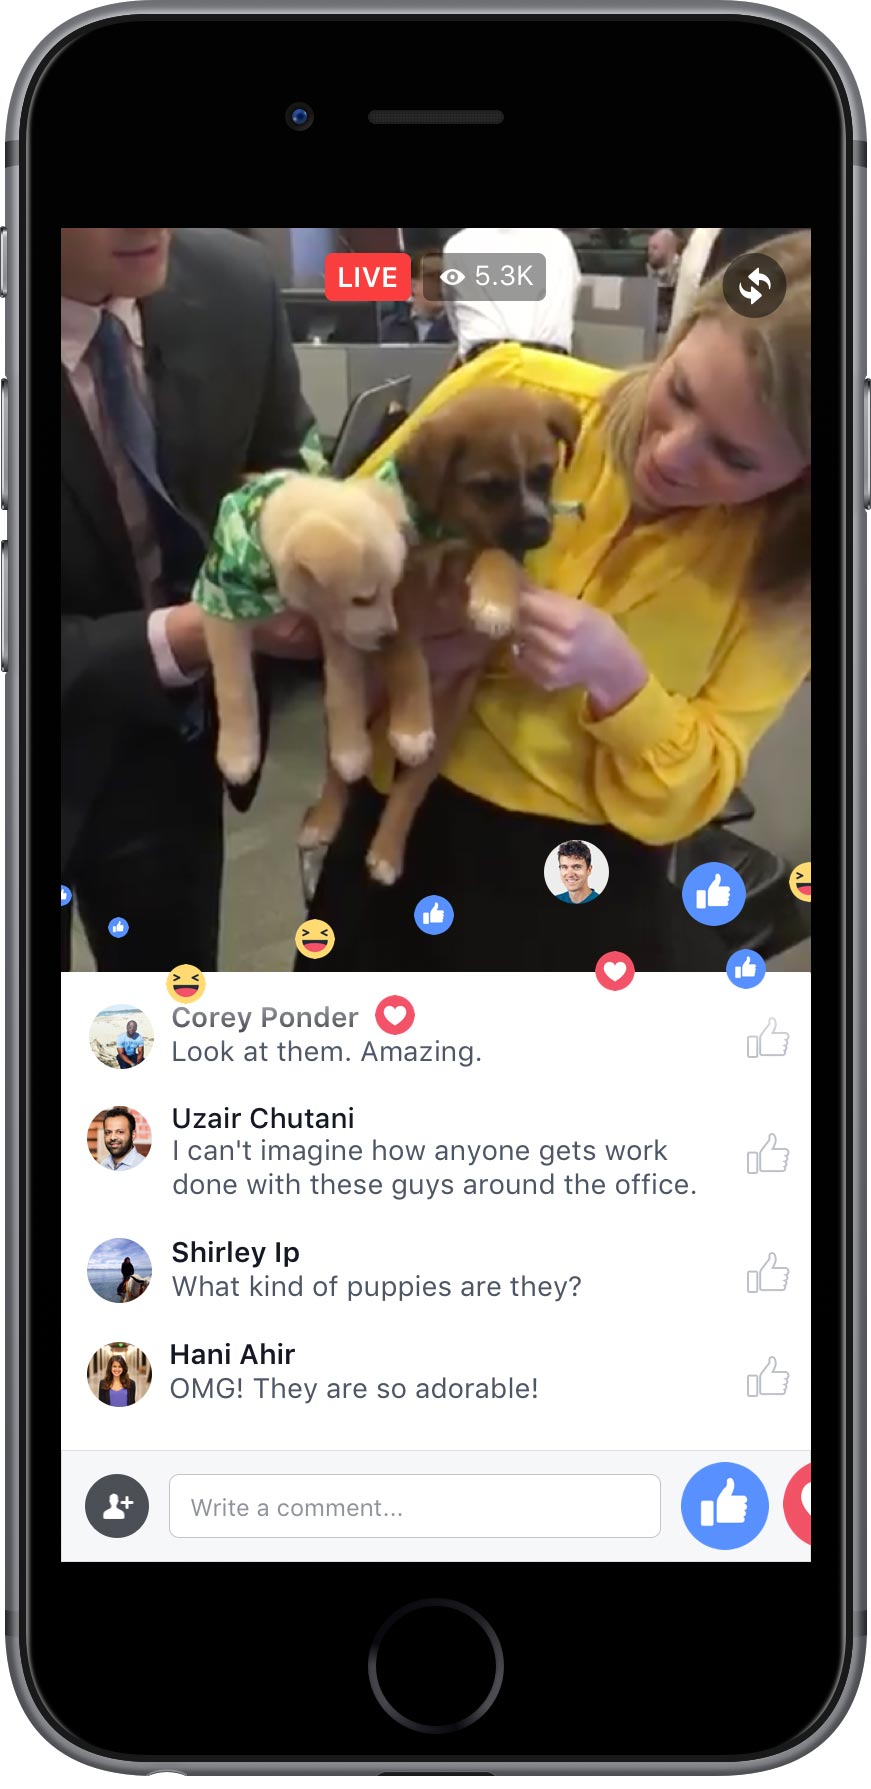 Facebook Trialling Mid-roll Video Ads on Facebook Live